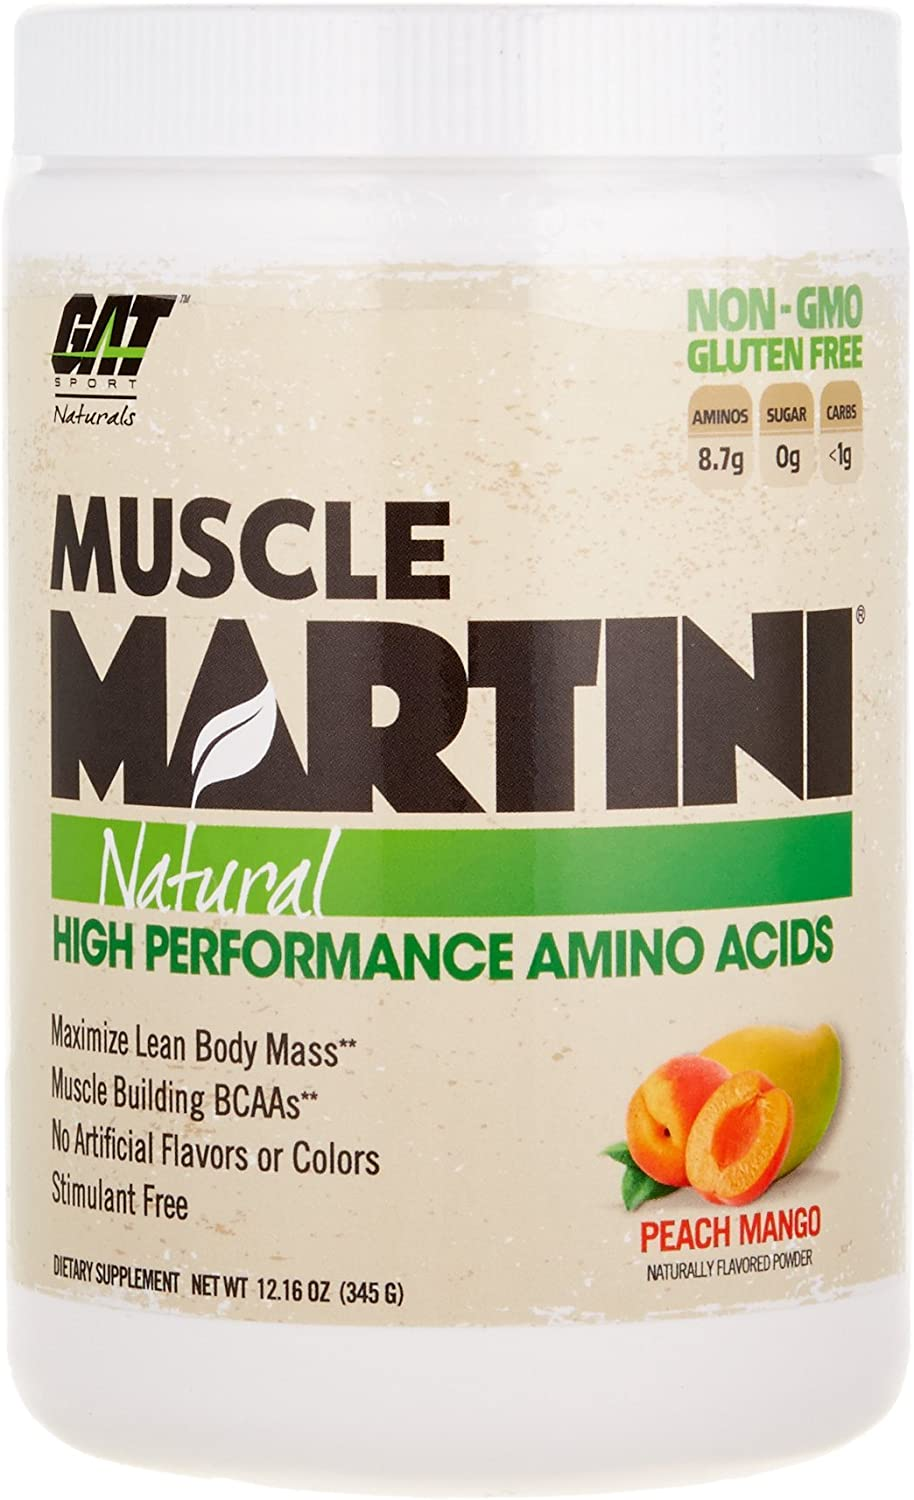 GAT Muscle Martini Natural BCAA Formula, High Performance Stimulant Free Muscle Building Amino Acids with No Artificial Flavors or colors, Peach Mango, 30 Sv